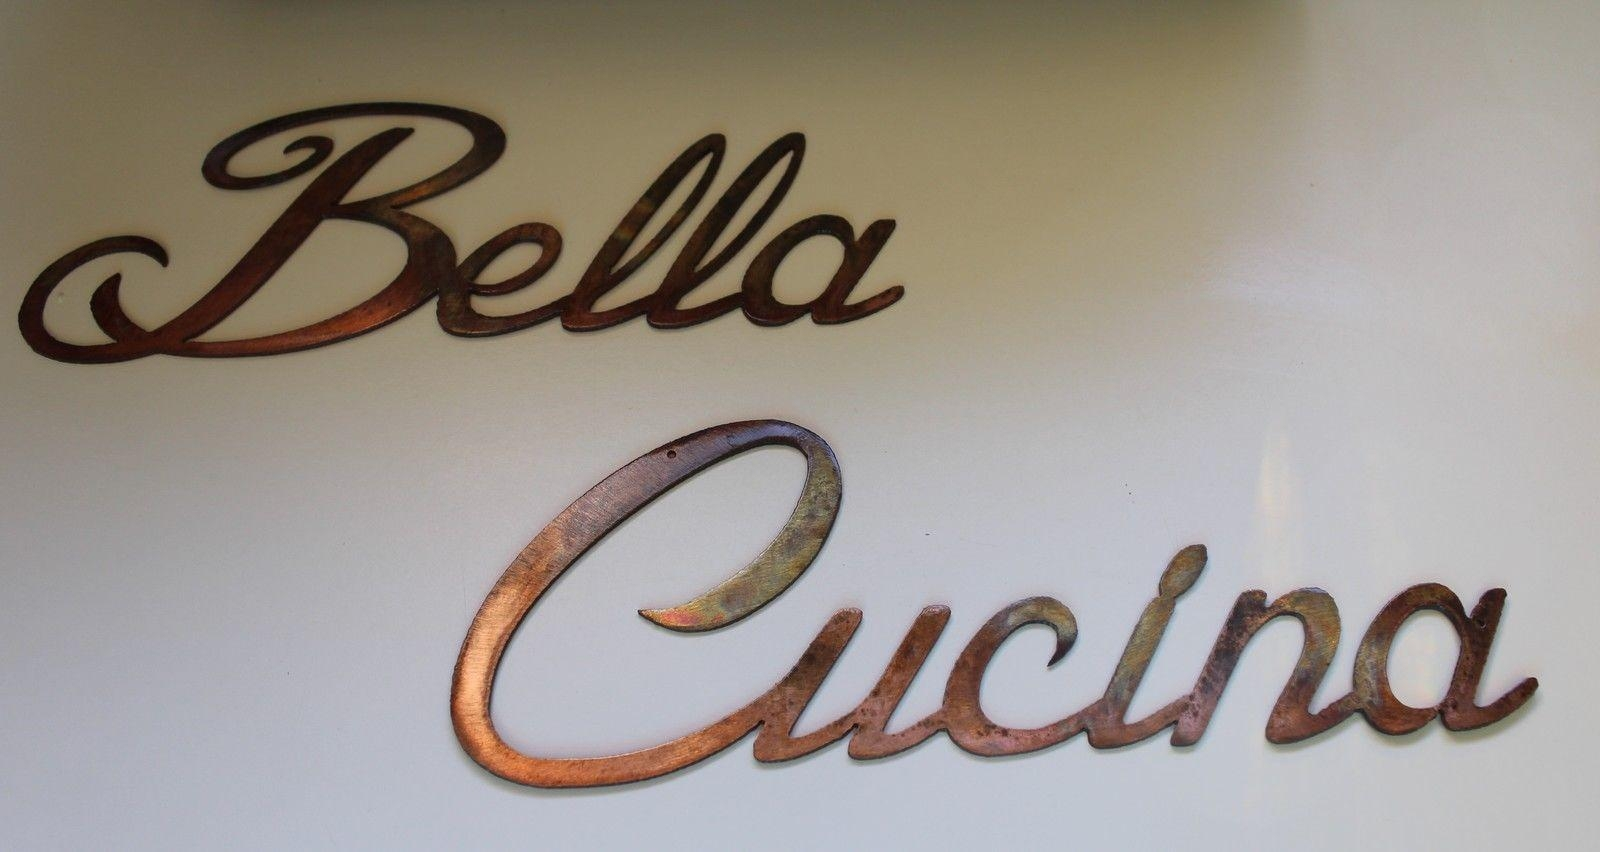 Bella Cucina Words Metal Wall Art Accents For Cucina Wall Art (View 4 of 20)